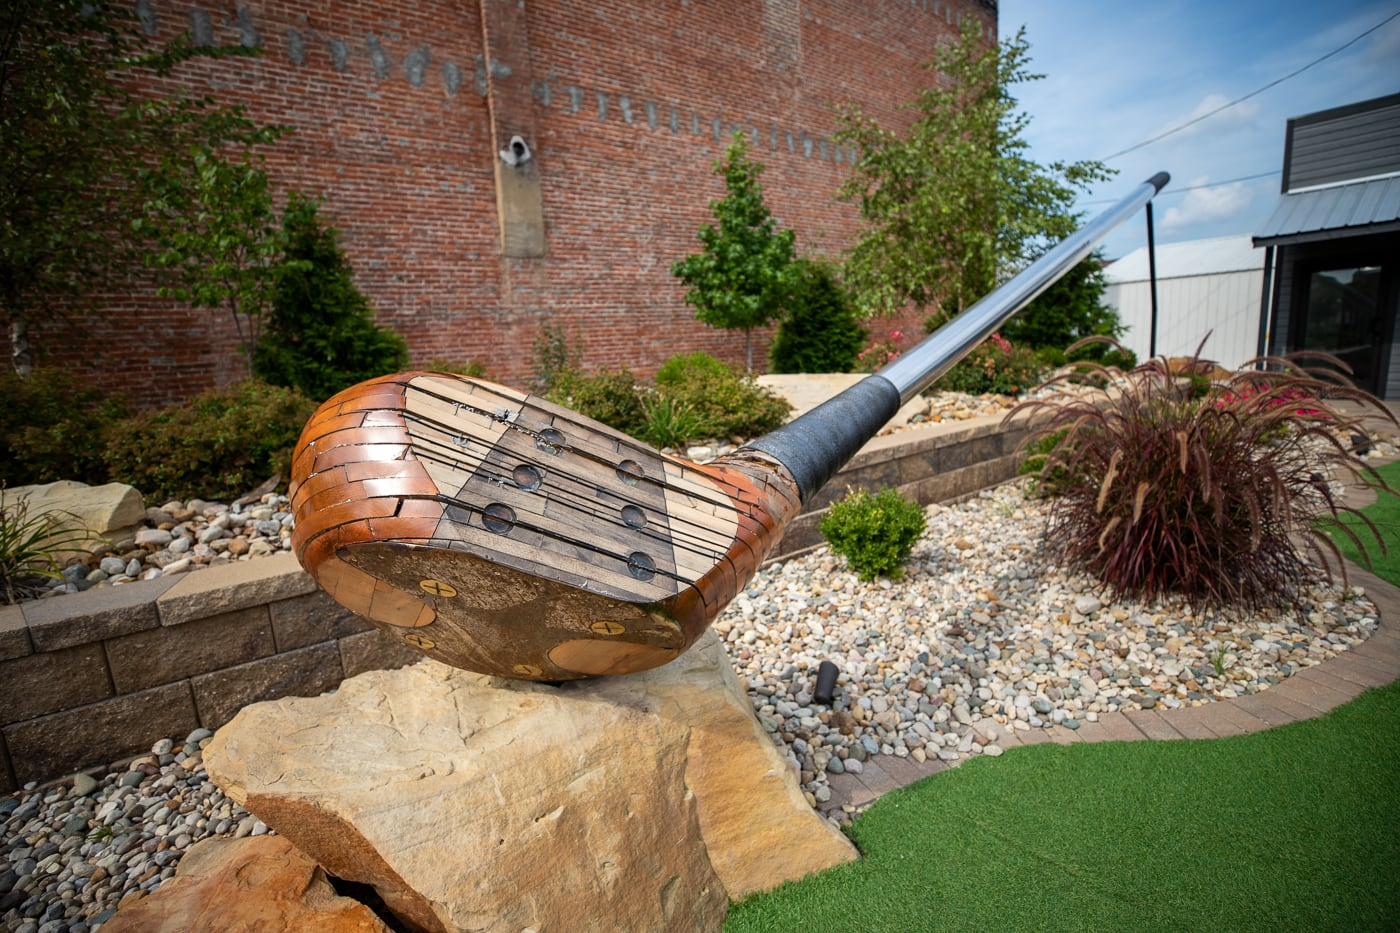 World's Largest Golf Driver in Casey, Illinois roadside attraction